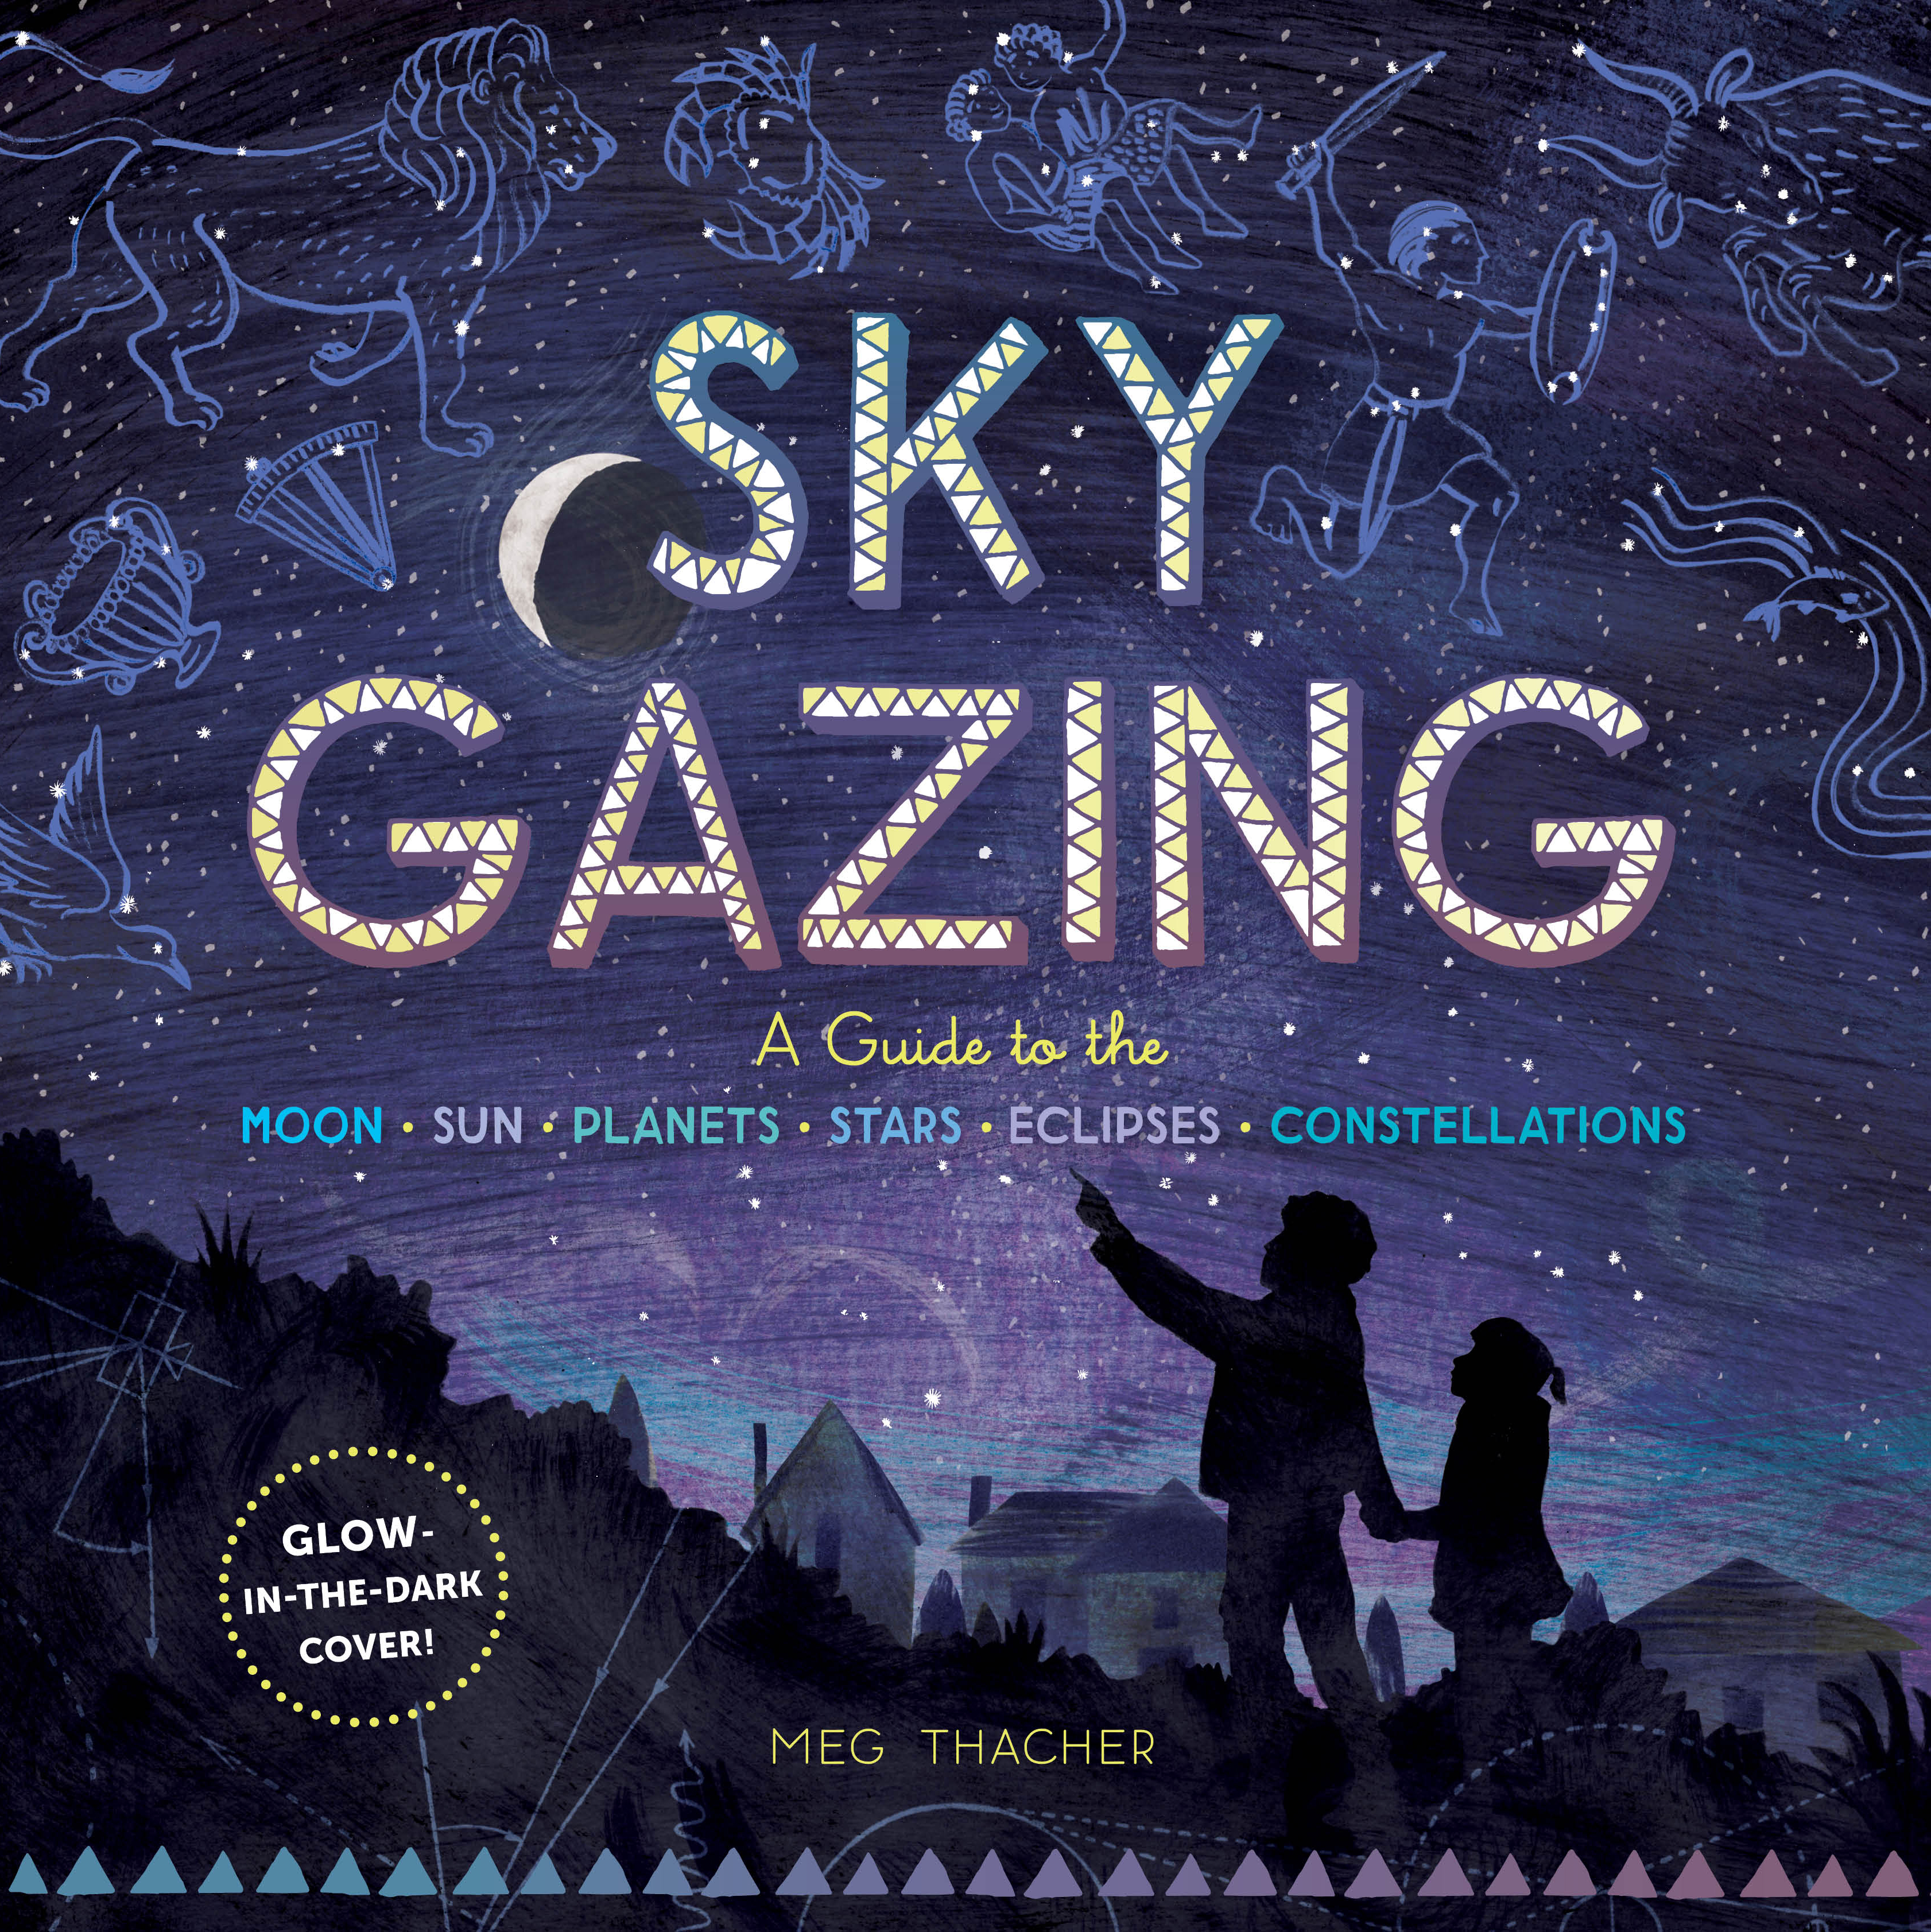 Sky Gazing A Guide to the Moon, Sun, Planets, Stars, Eclipses, and Constellations - Meg Thacher